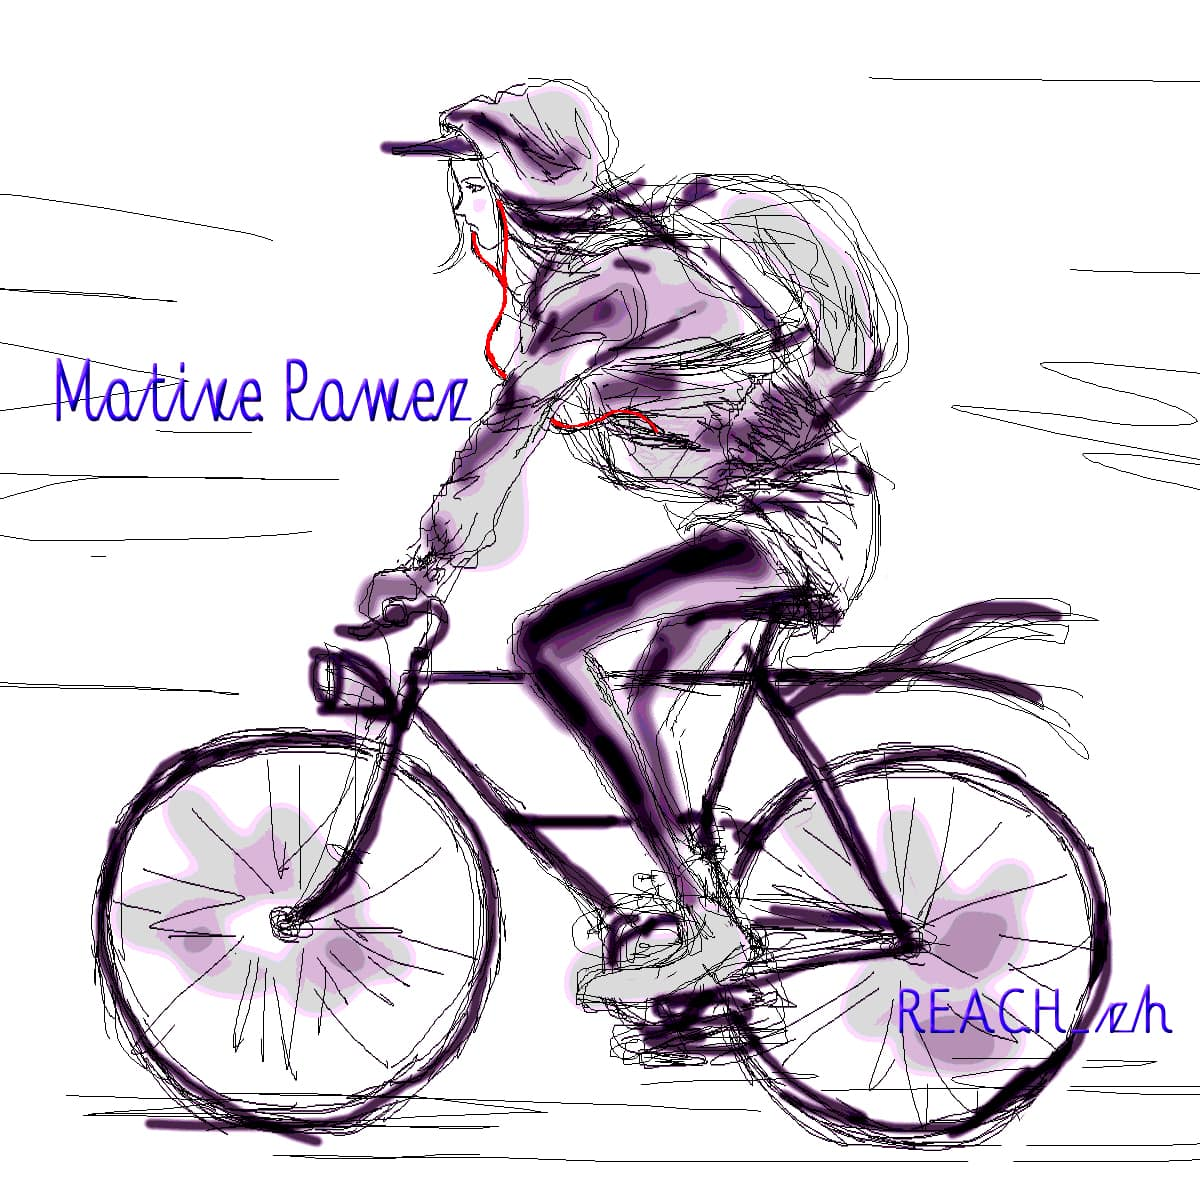 Motive Power